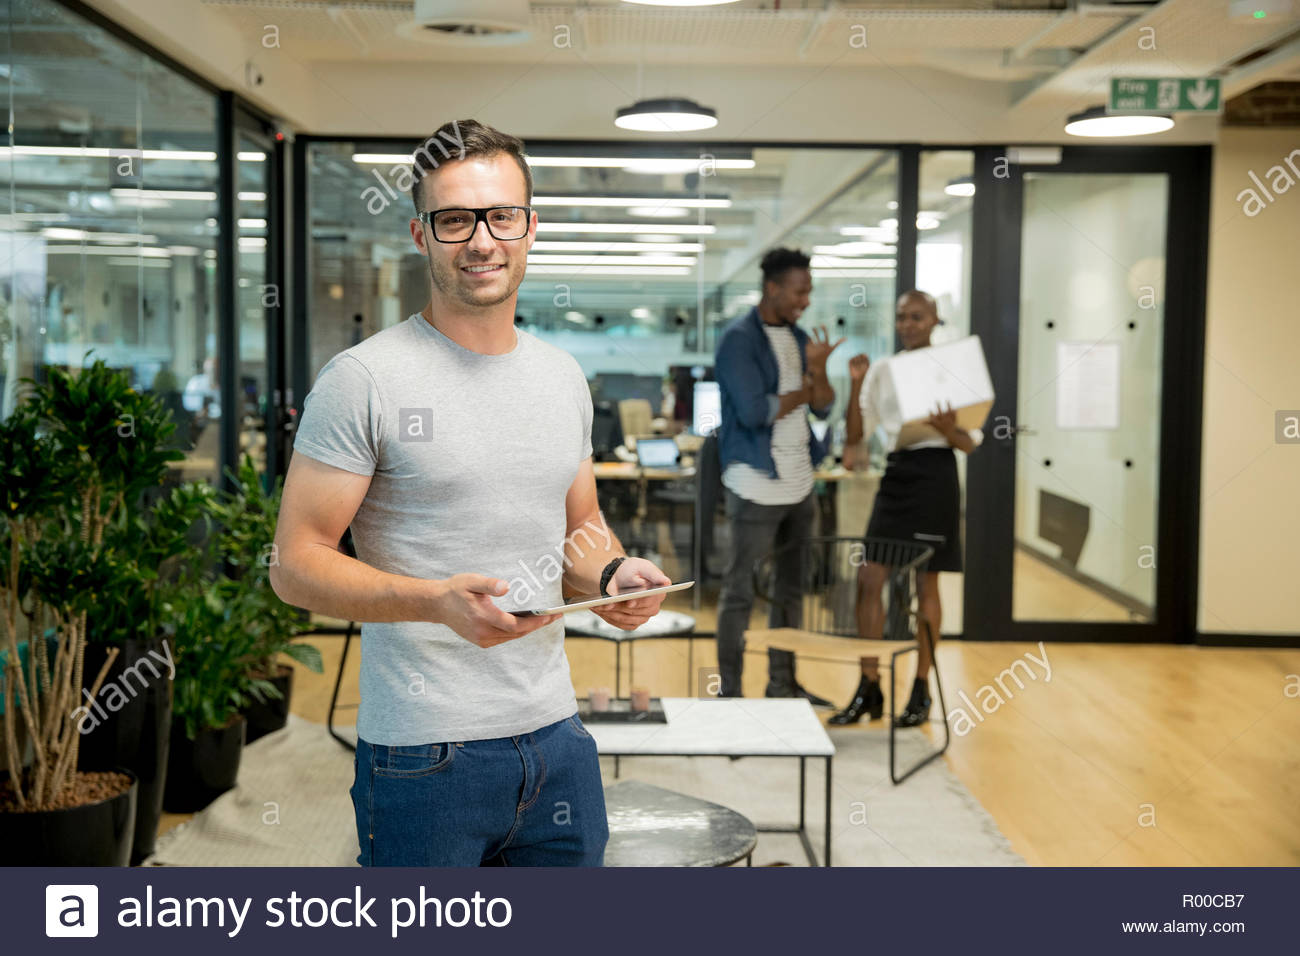 Smiling young businessman holding tablet in office Stock Photo